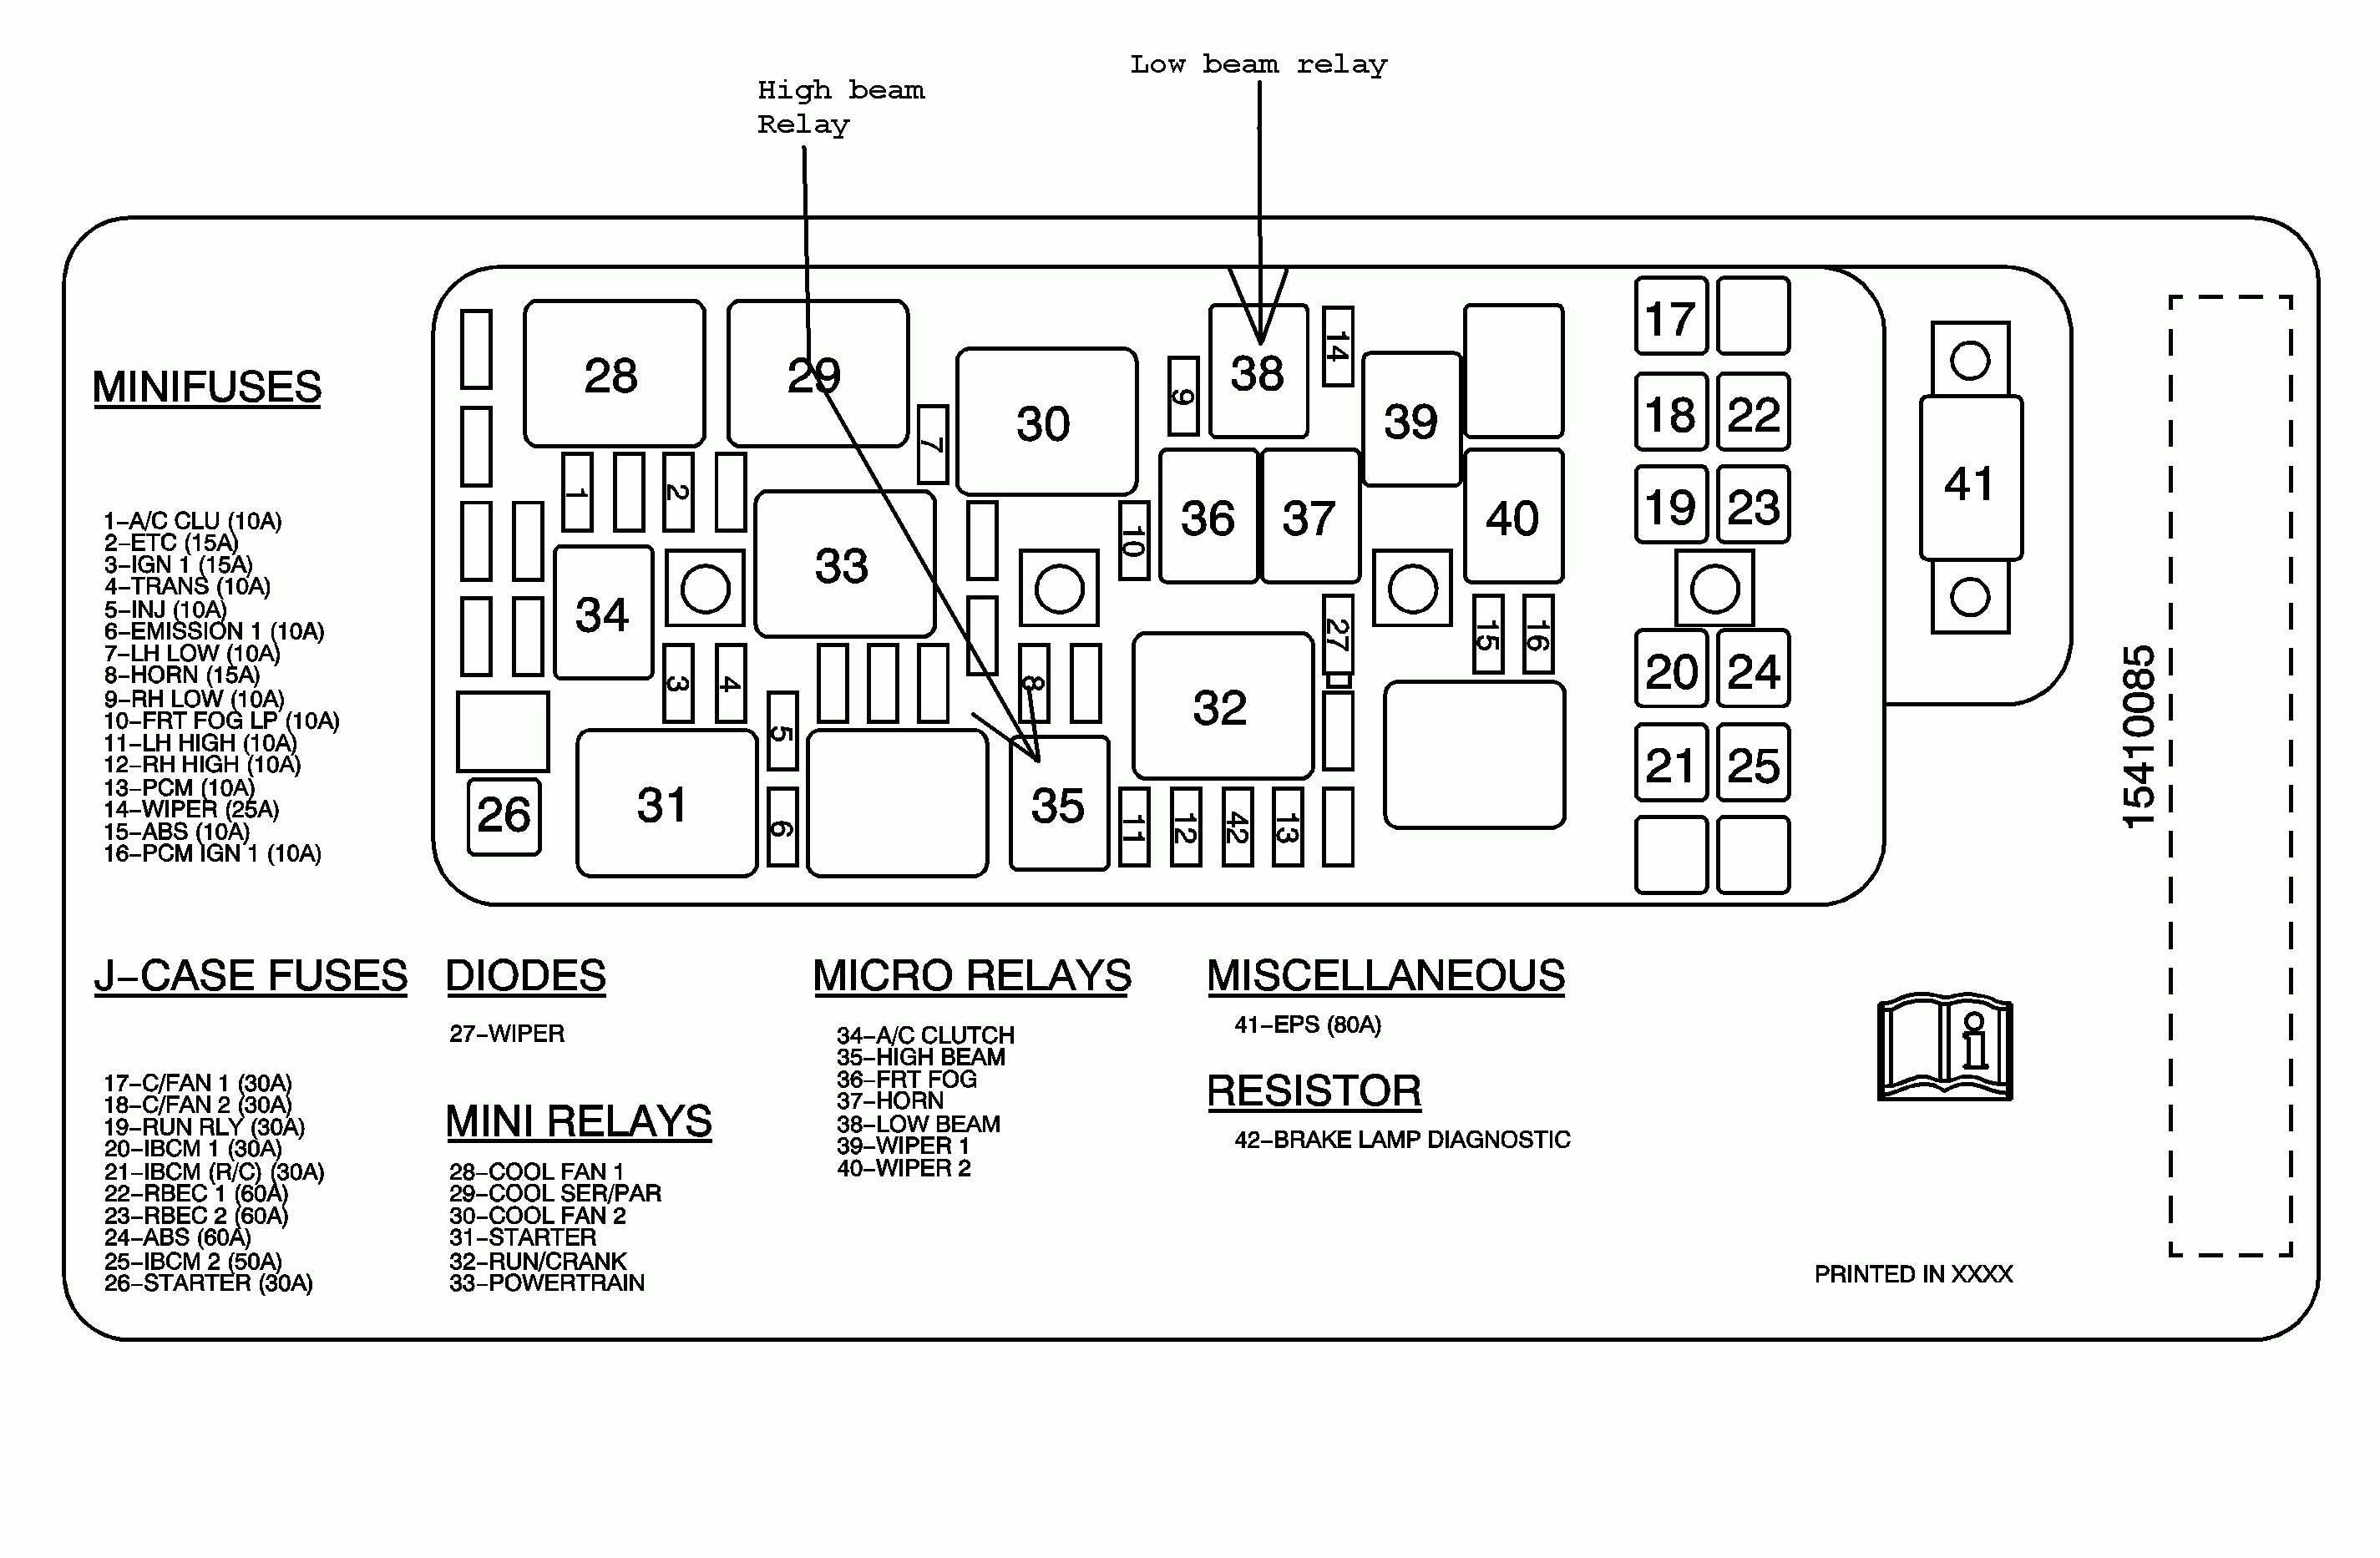 2008 Chevy Cobalt Stereo Wiring Diagram For Your Needs